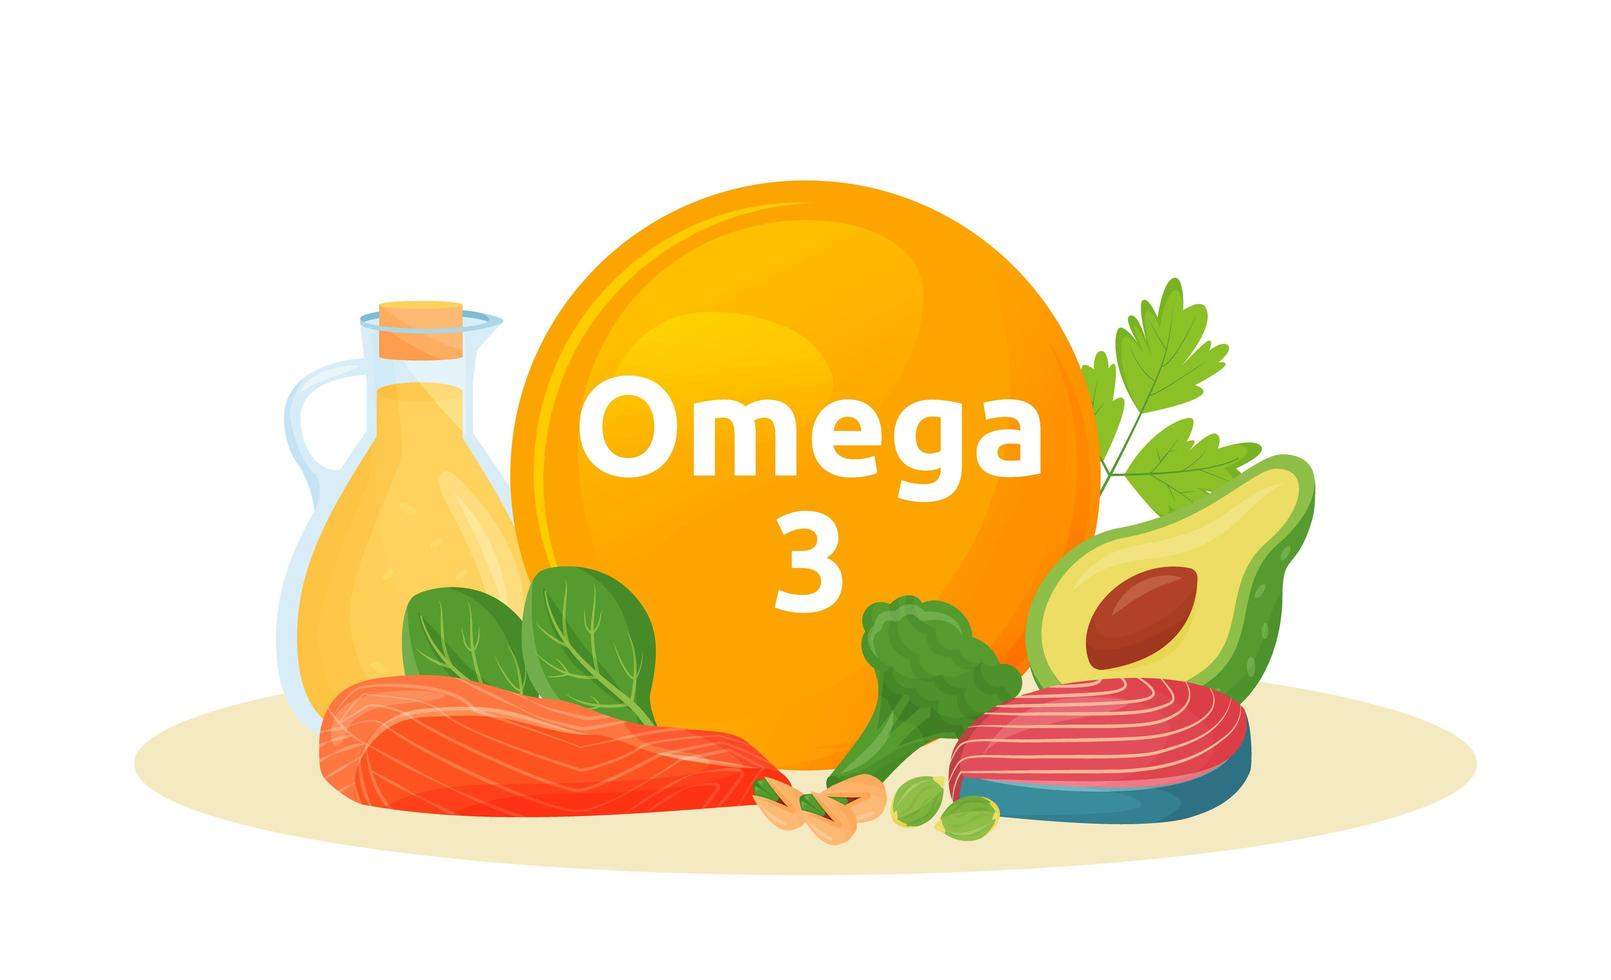 Products reach of omega 3 vector